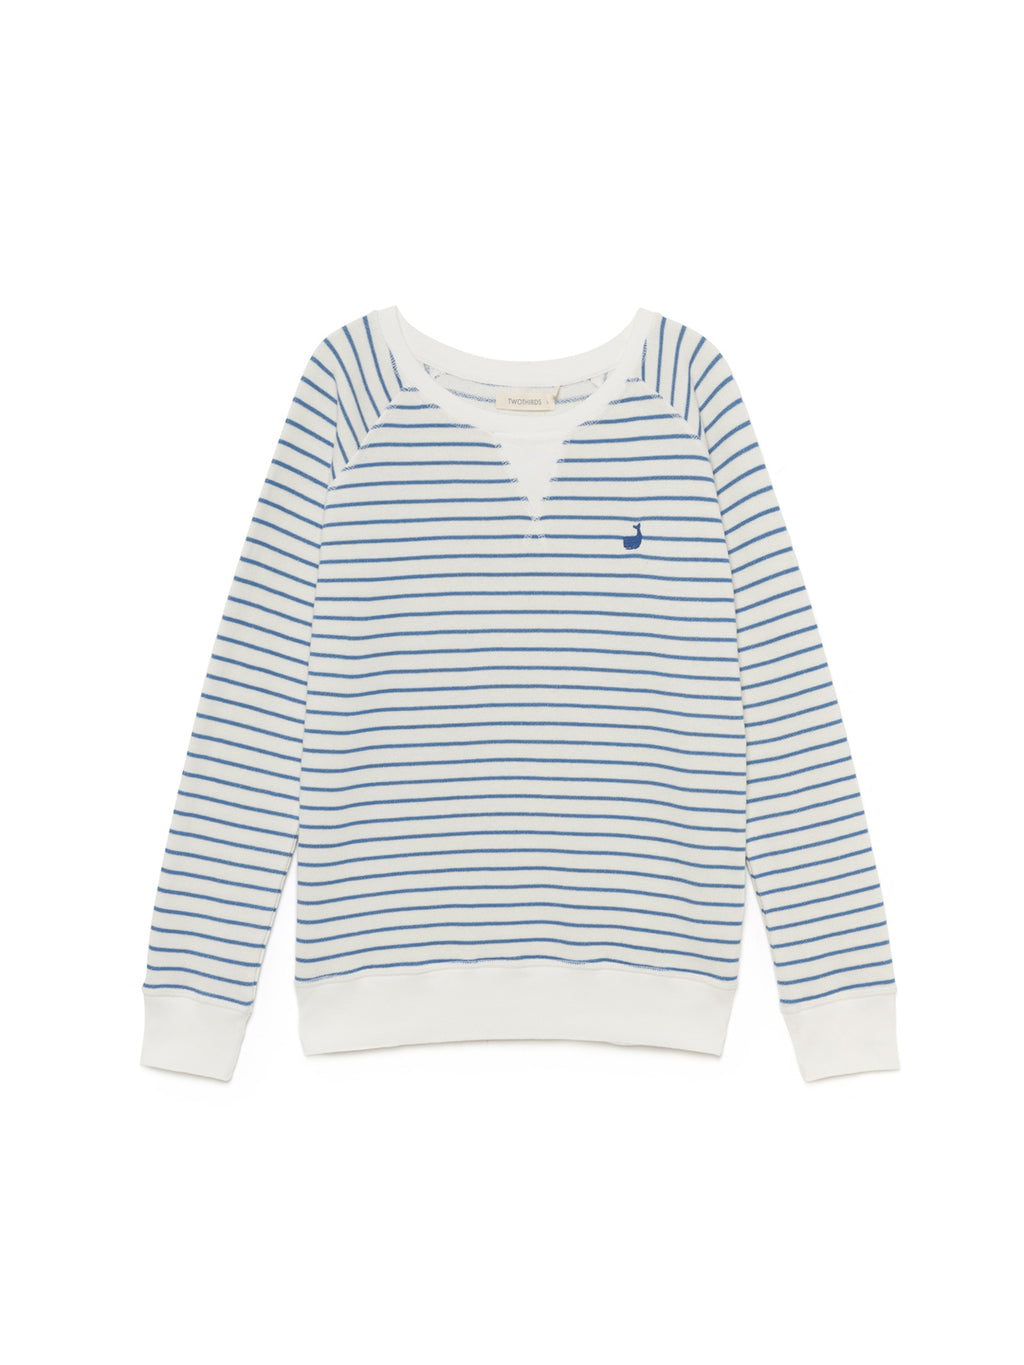 TWOTHIRDS Womens Sweat: Corfu - White front